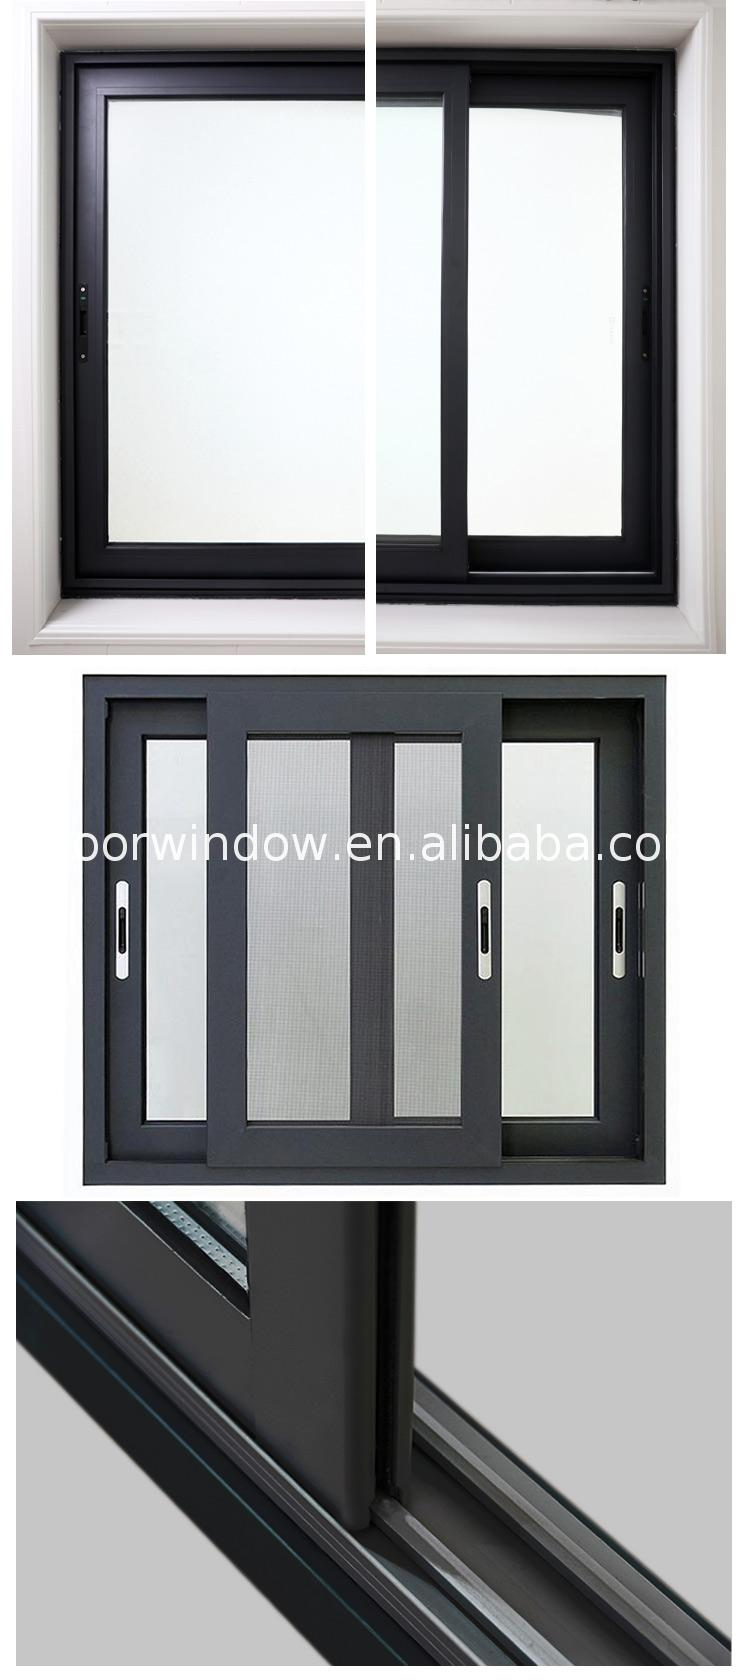 nzs2047 aluminium Office interior sliding window